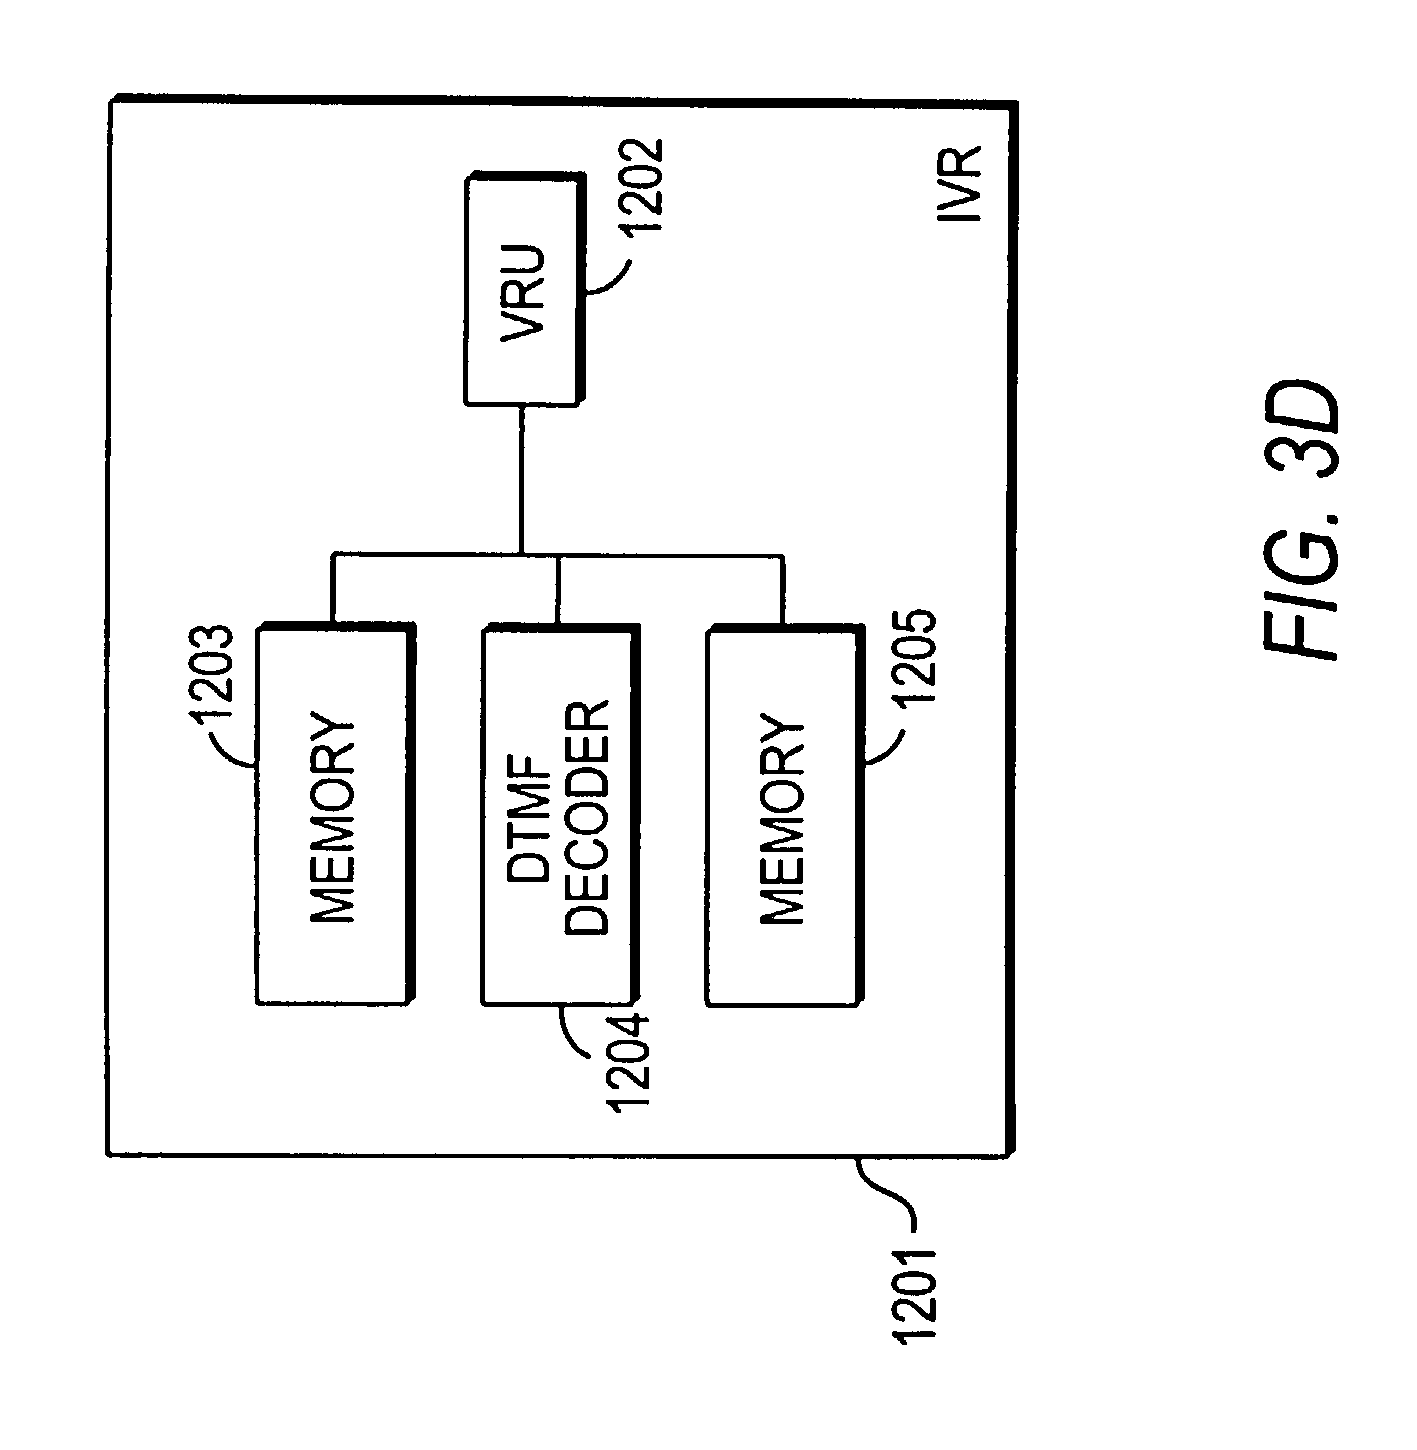 patent us7039166 apparatus and method for visually representing